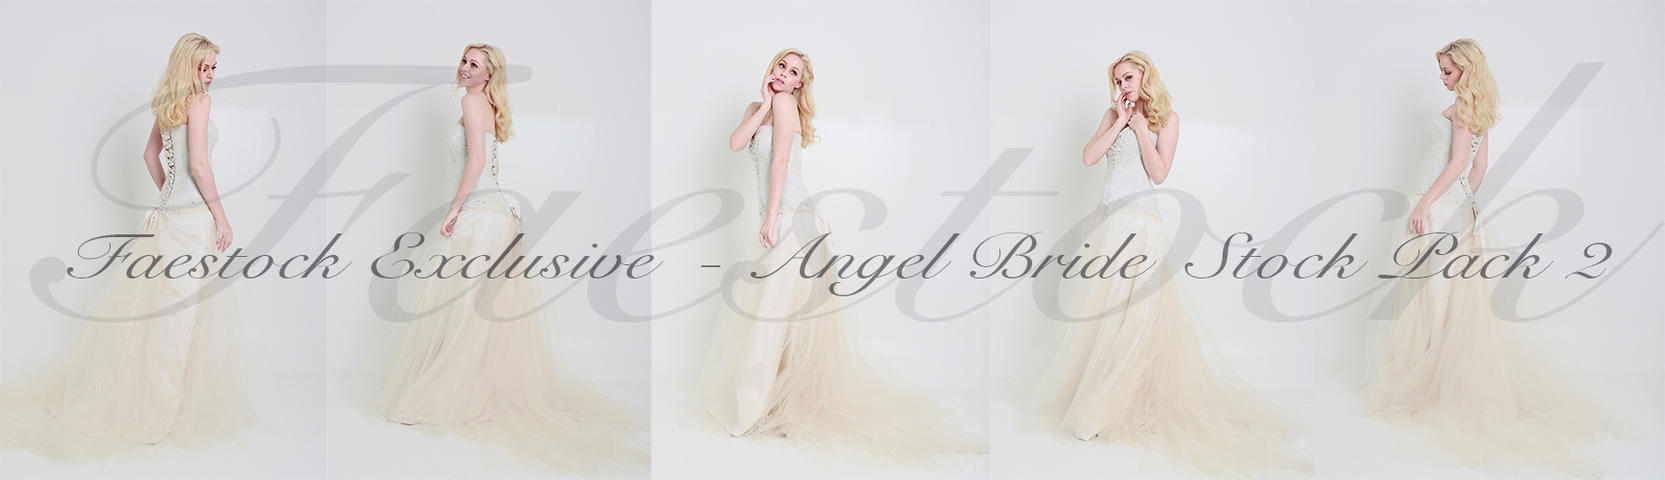 Bridal Exclusive Stock Pack 2 by faestock